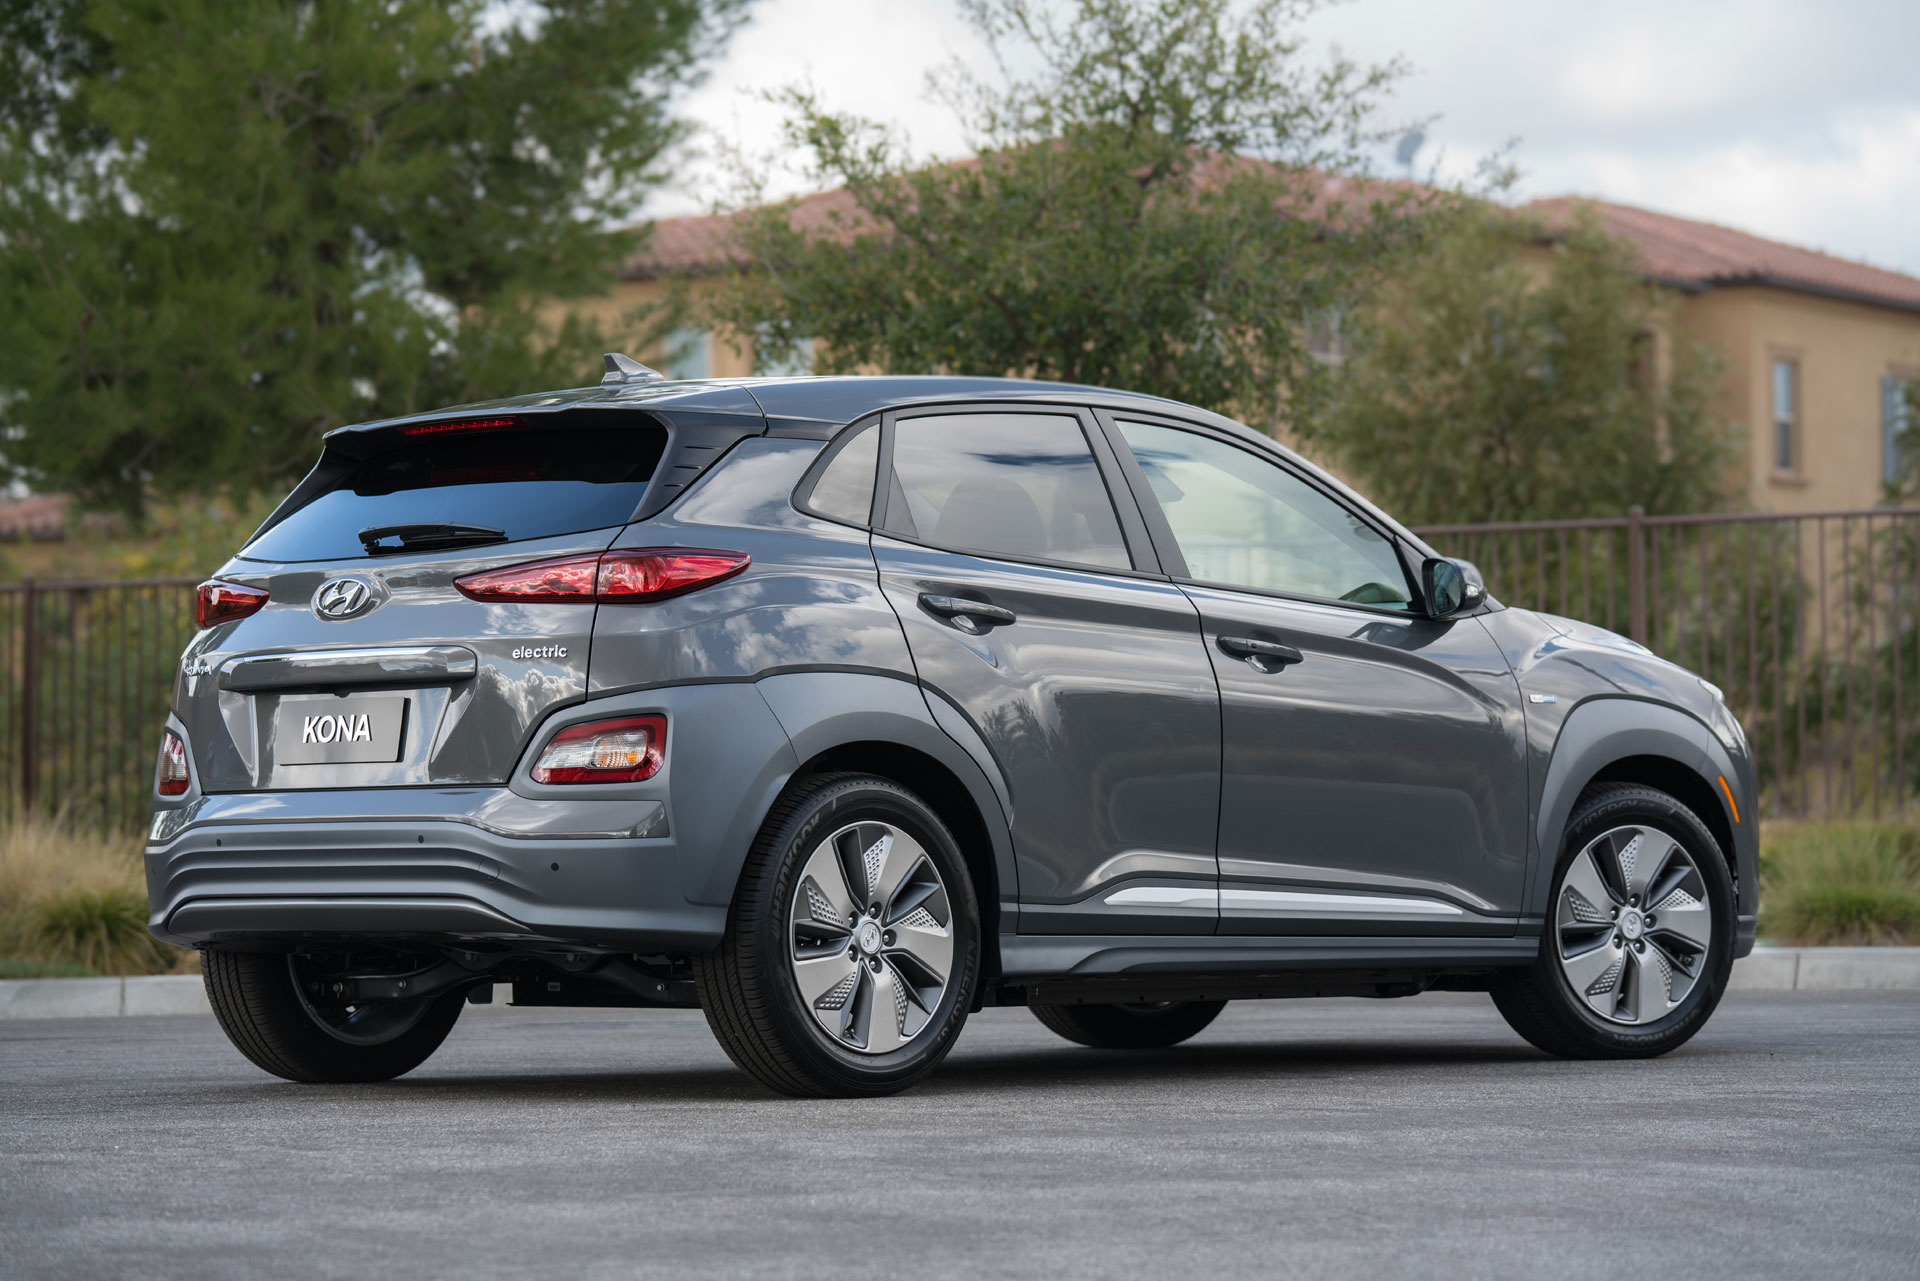 Kona Electric, Bolt EV, Niro, C-HR aren't crossovers ...